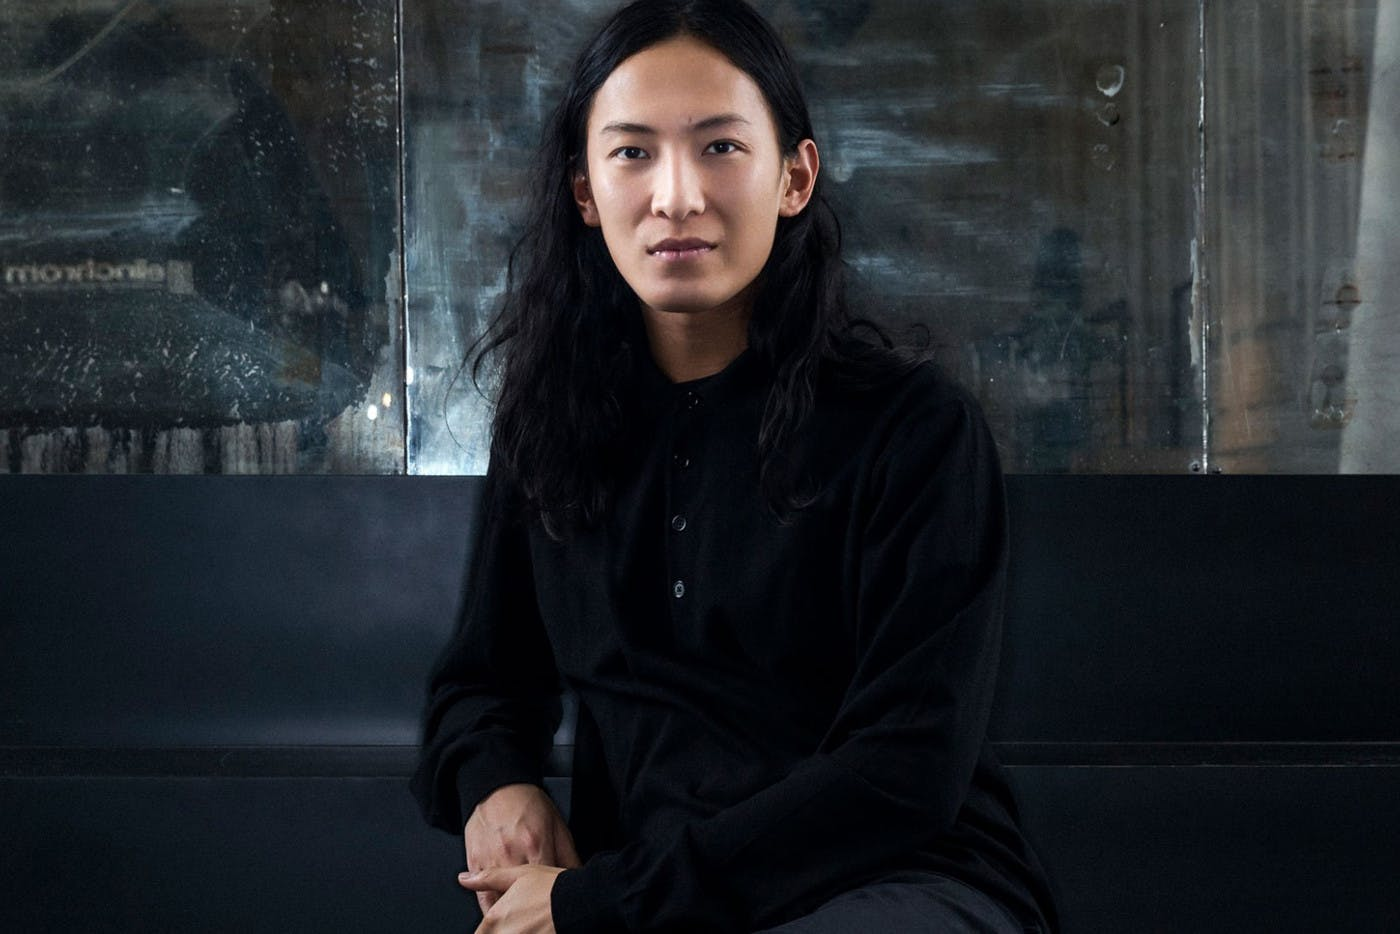 ALEXANDER WANG: WHY RETAIL IS IN THE PAST